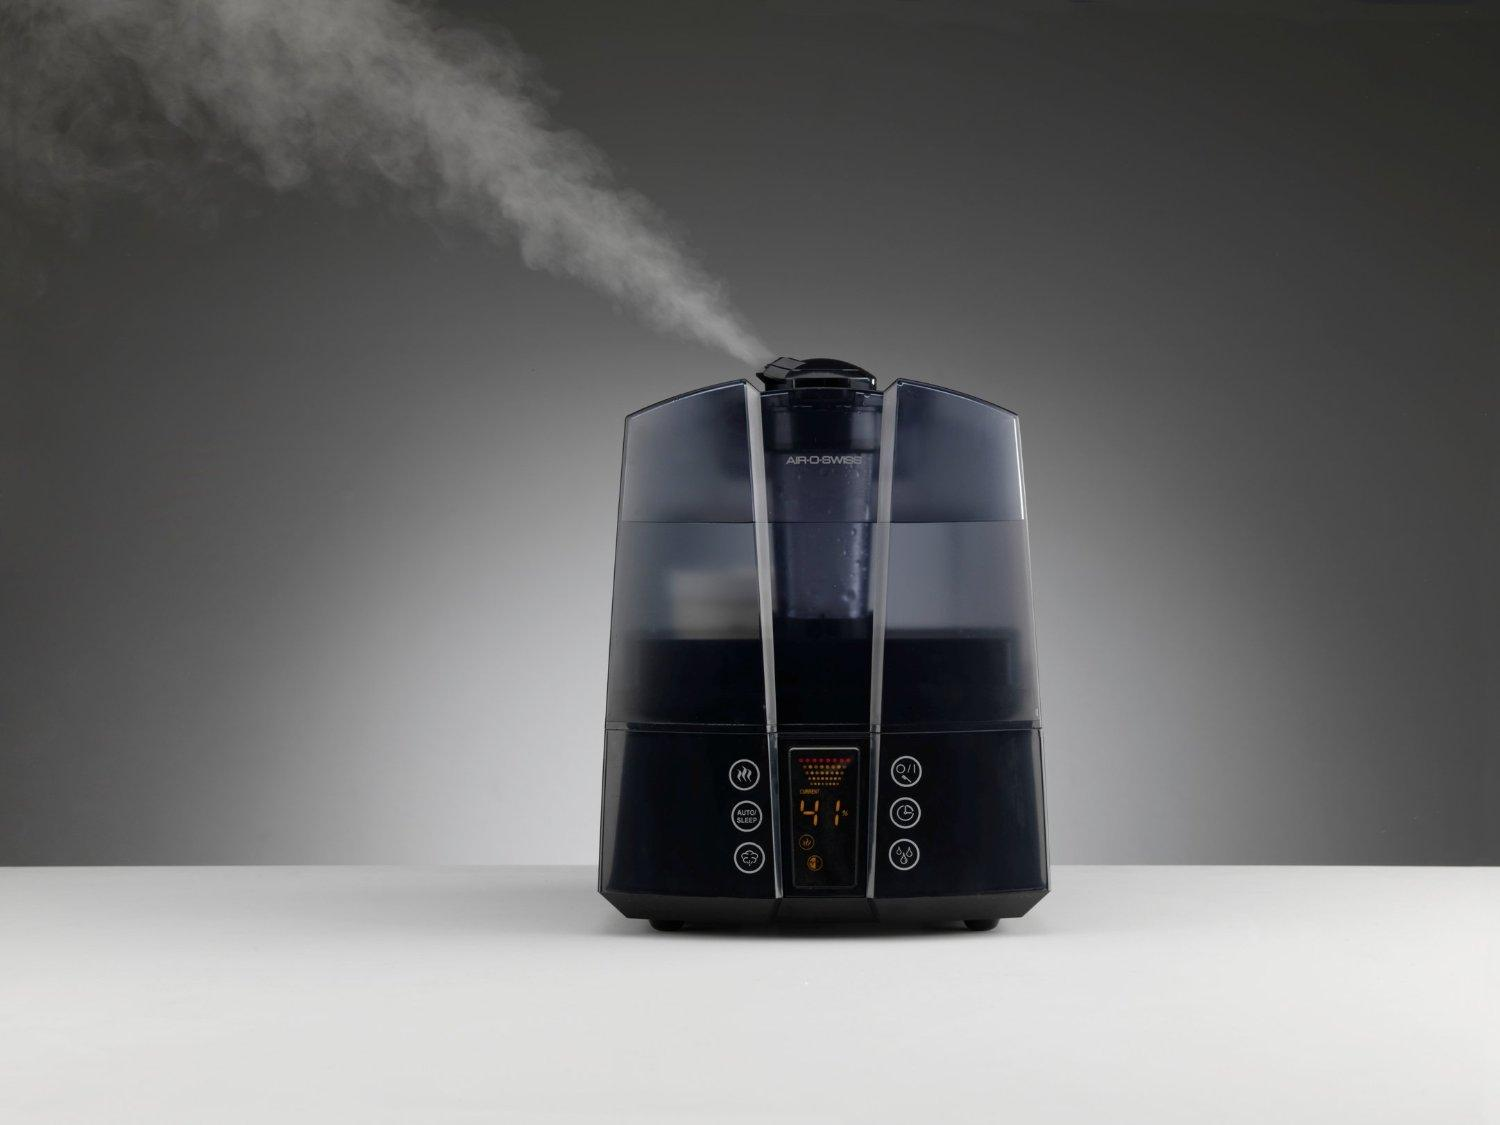 Air-O-Swiss AOS 7147 Ultrasonic Humidifier - Warm and Cool Mist